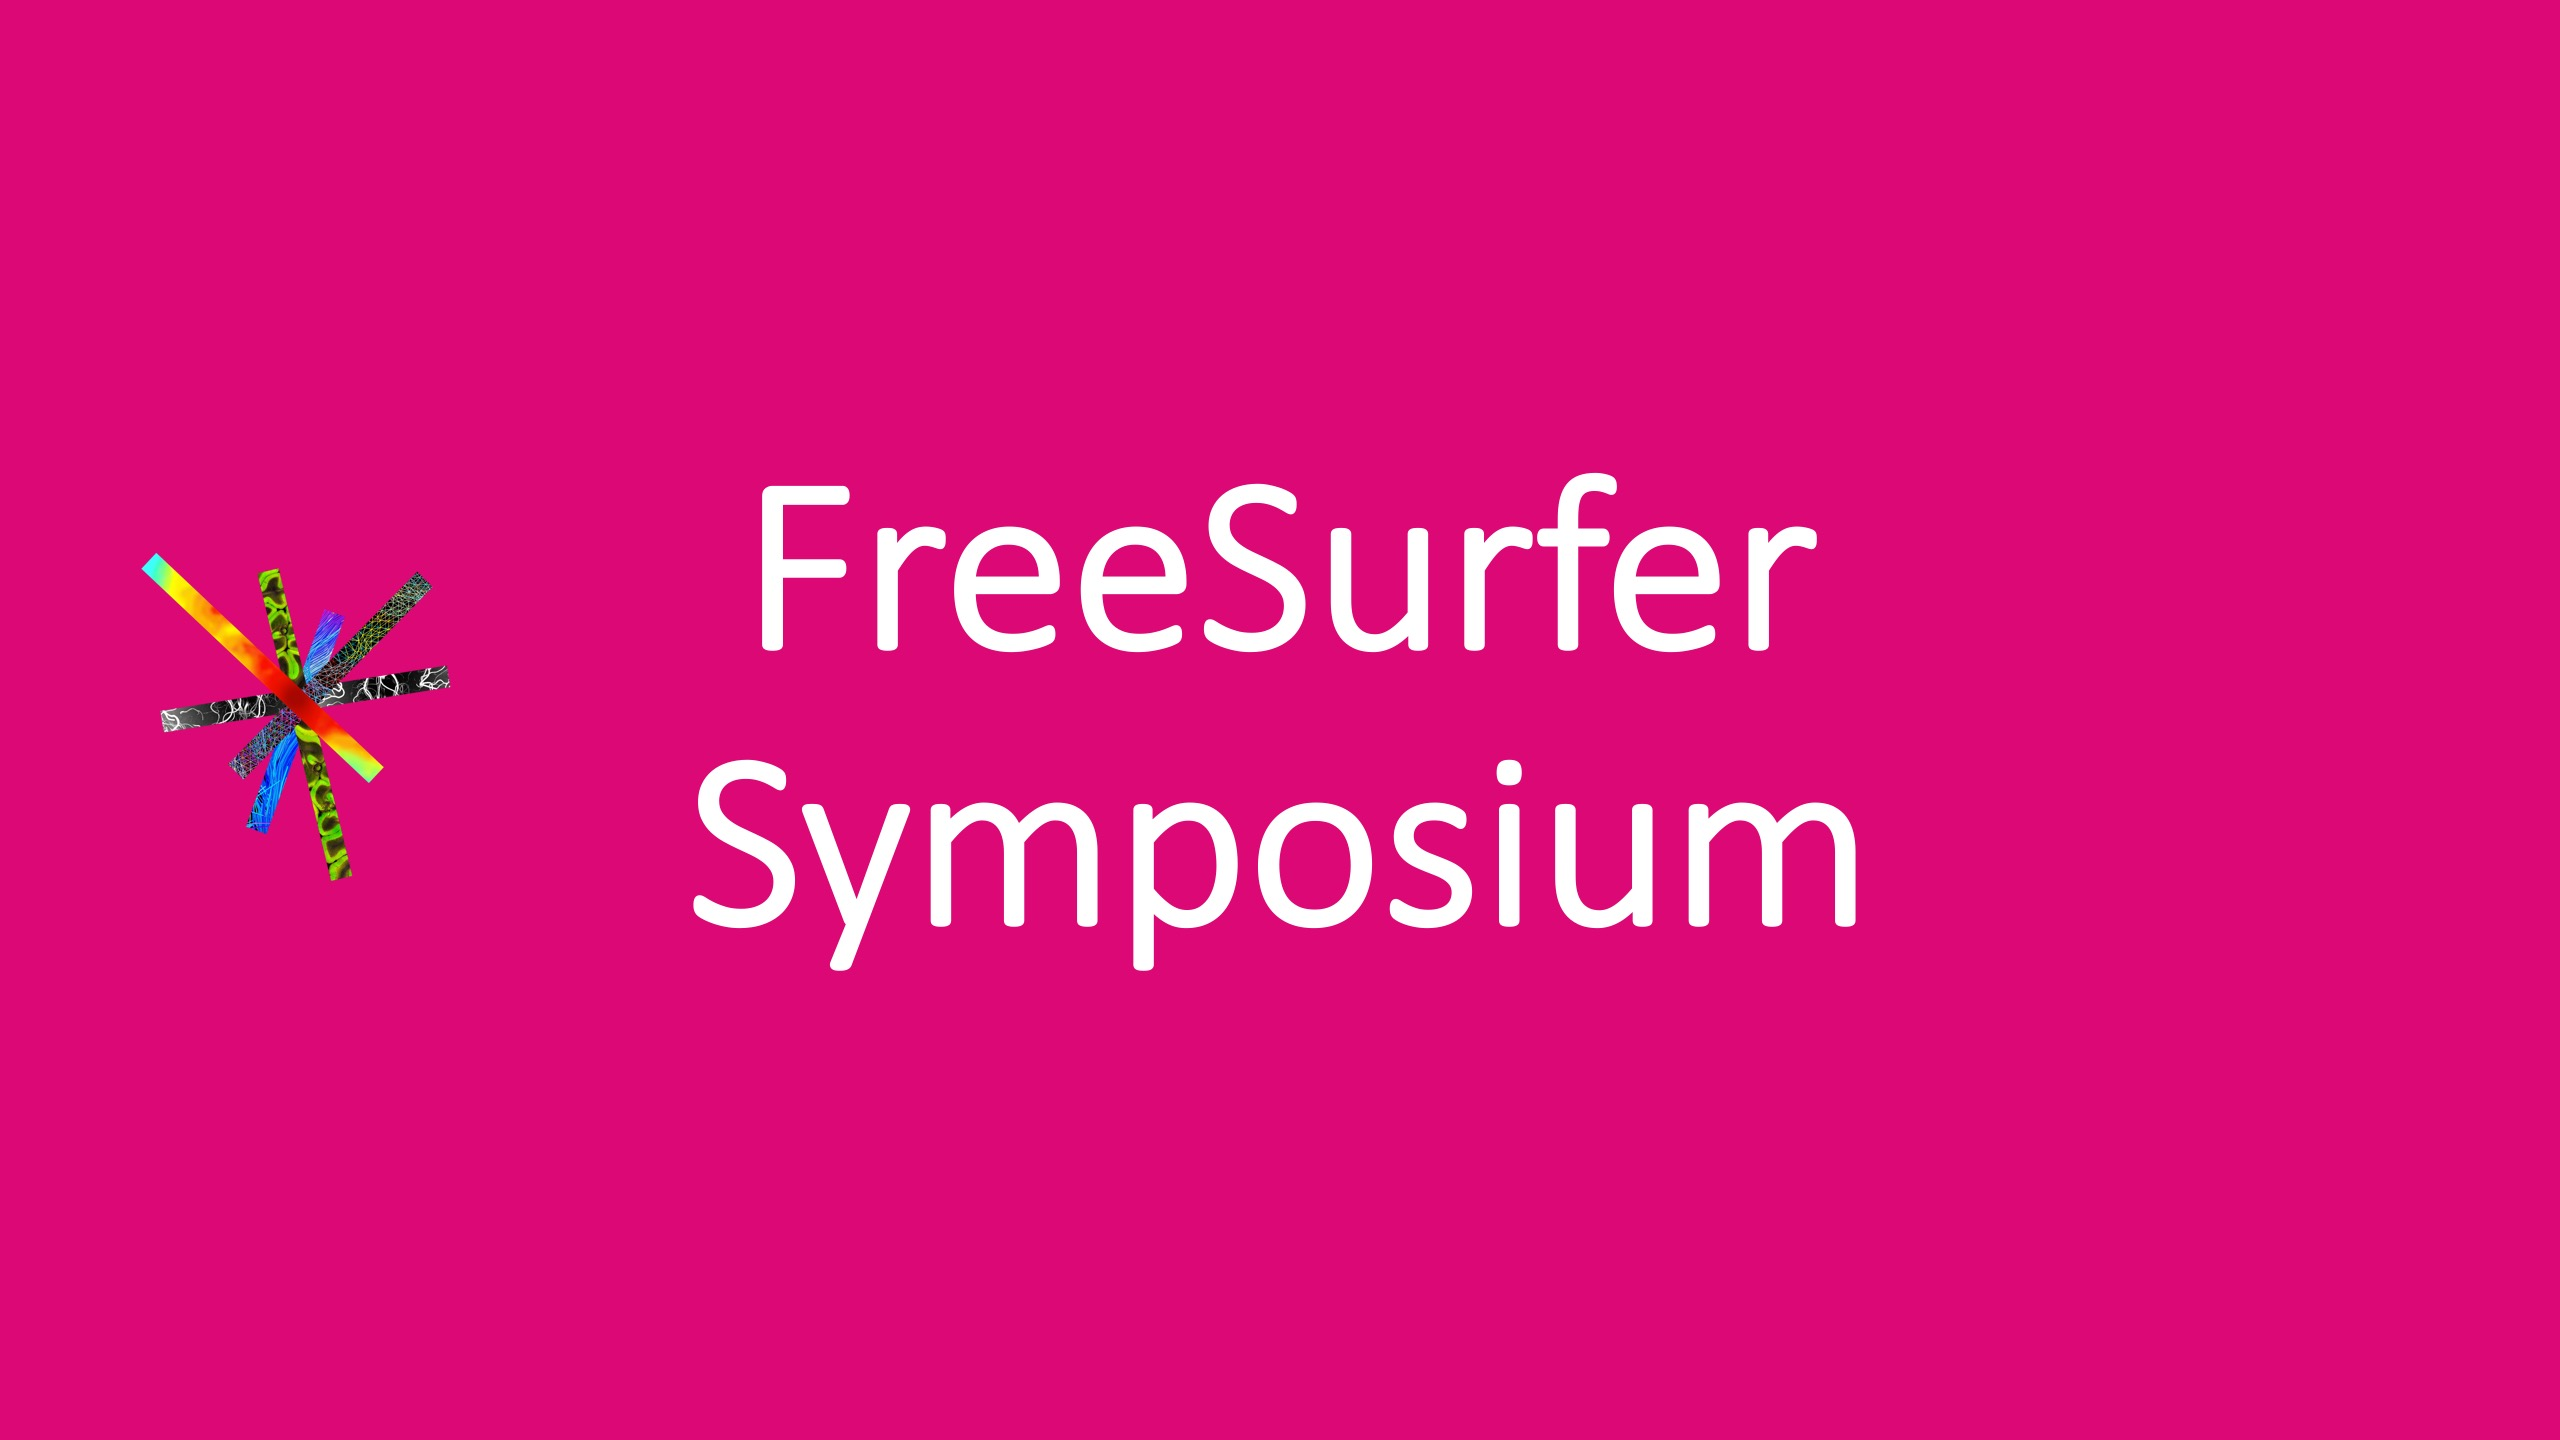 FreeSurfer Symposium